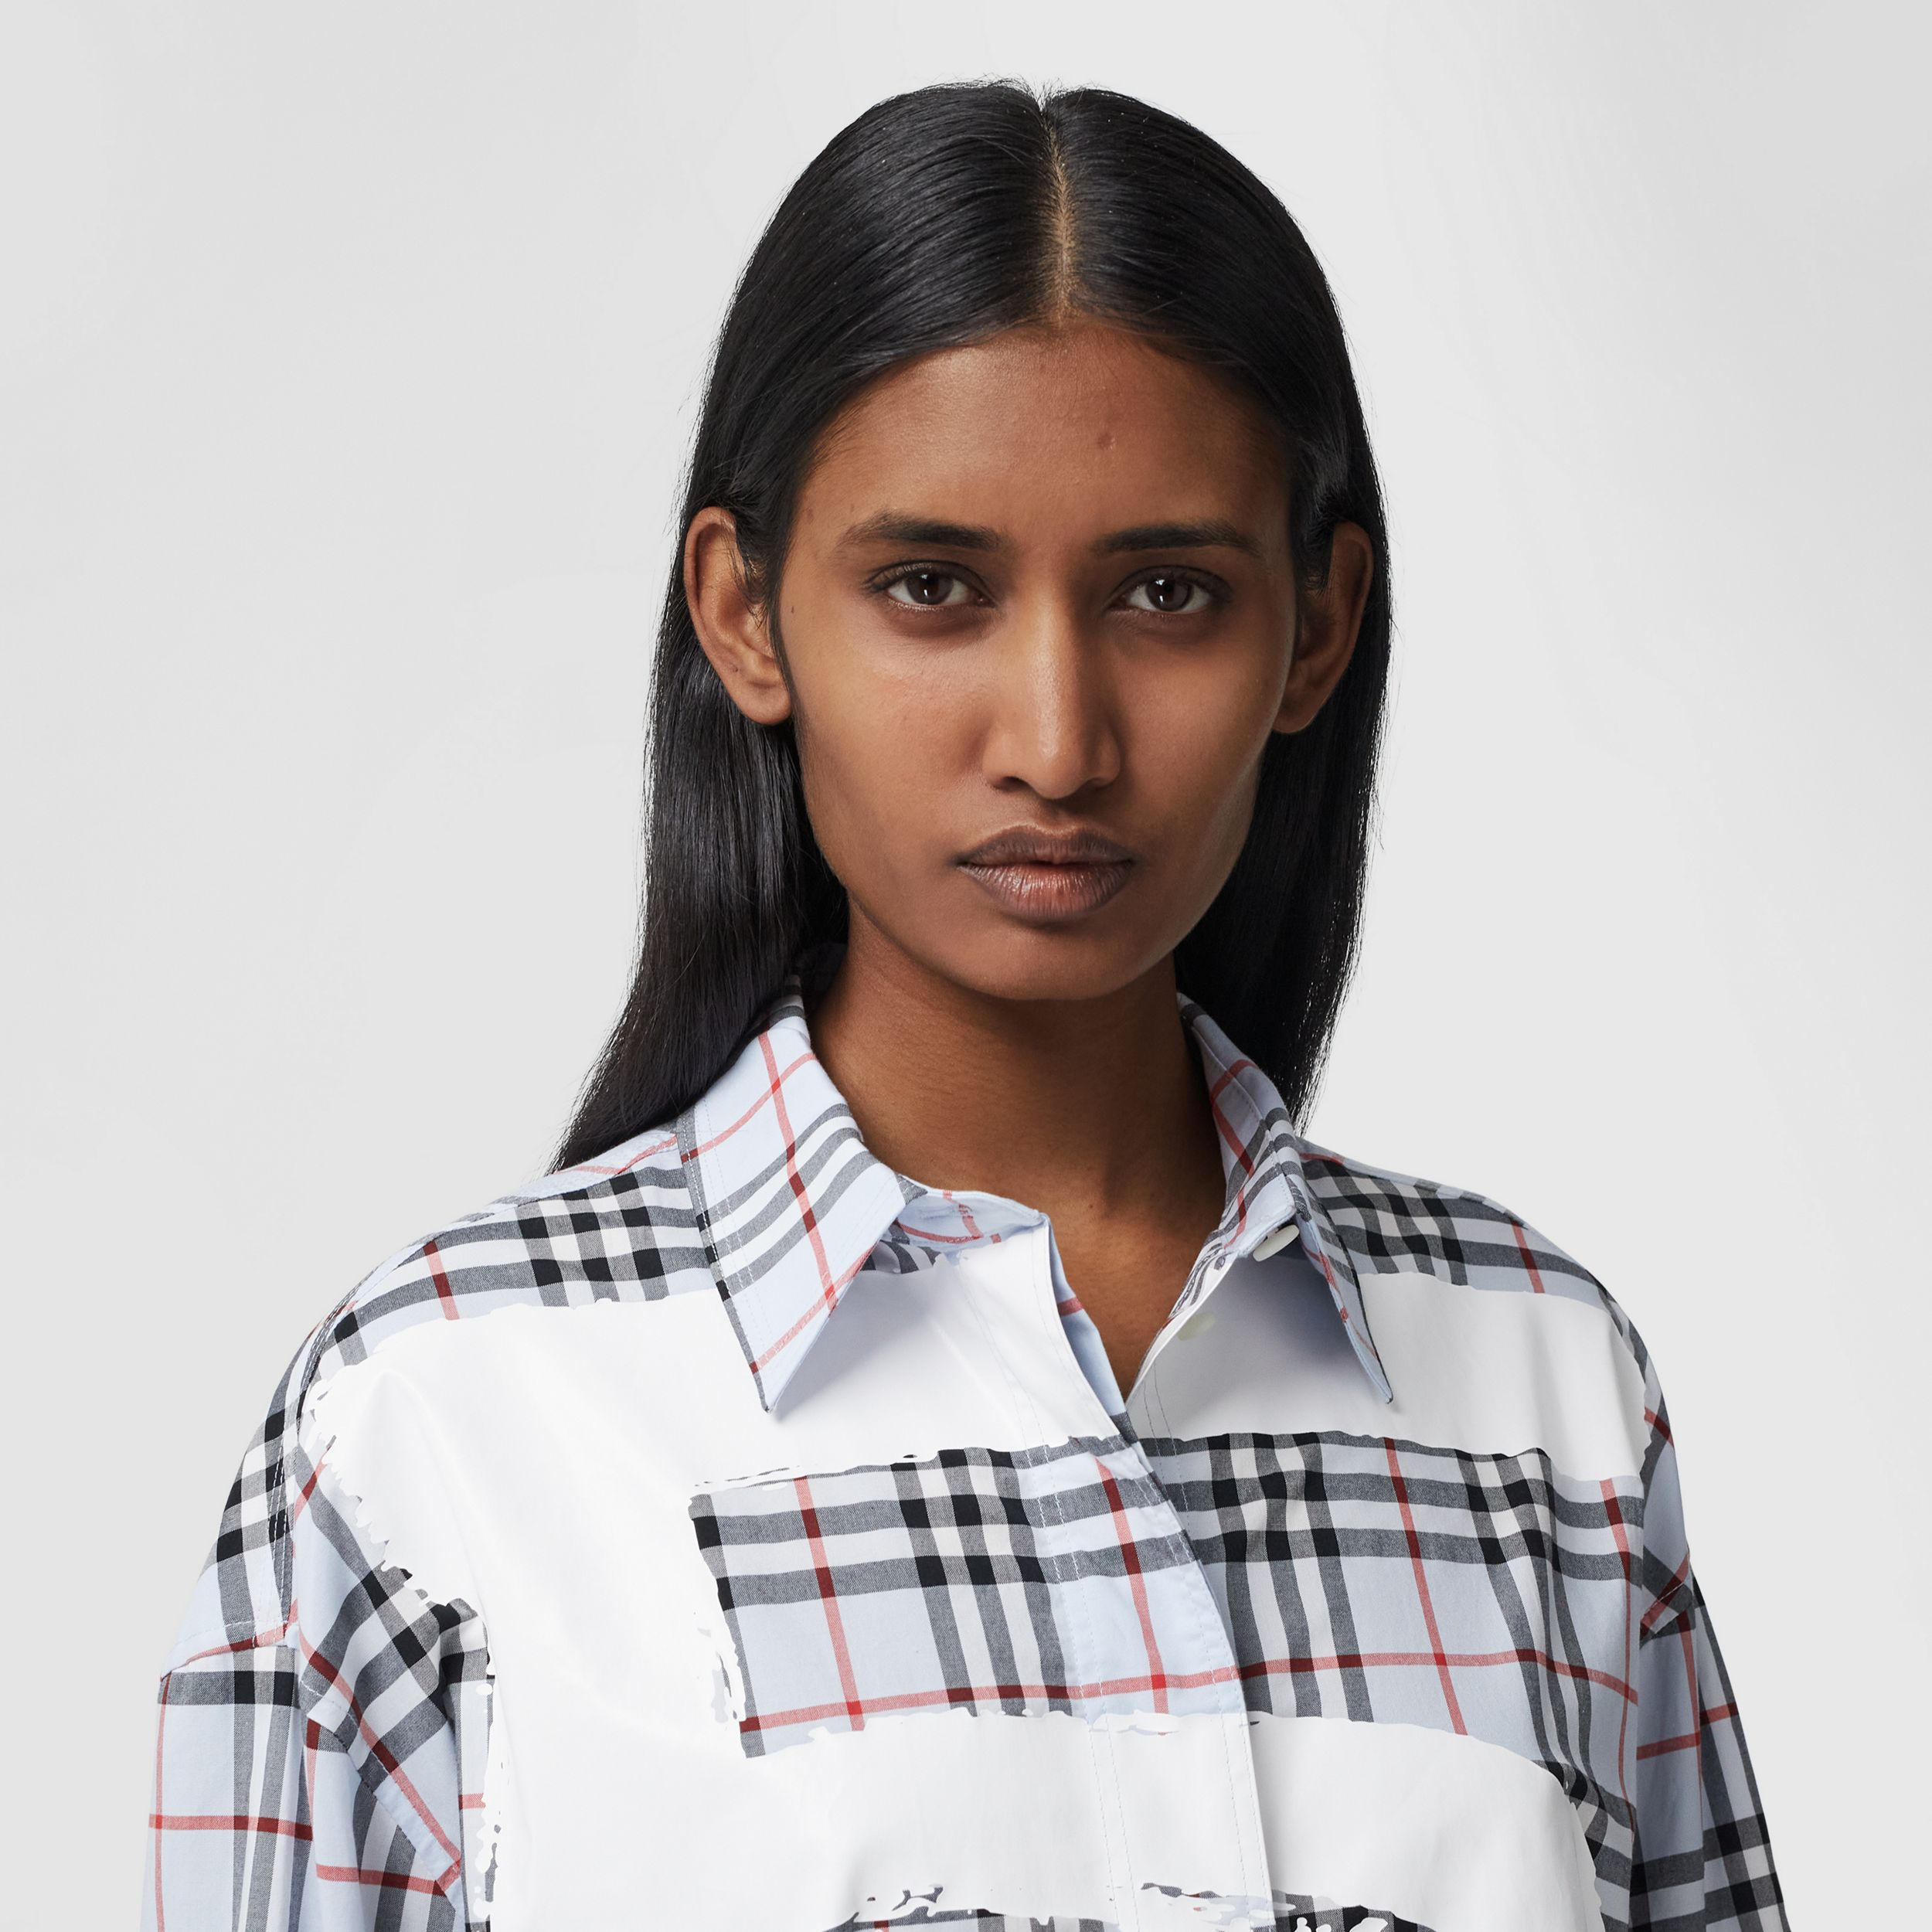 Love Print Vintage Check Cotton Oversized Shirt – Online Exclusive in Pale Blue - Women | Burberry Australia - 2